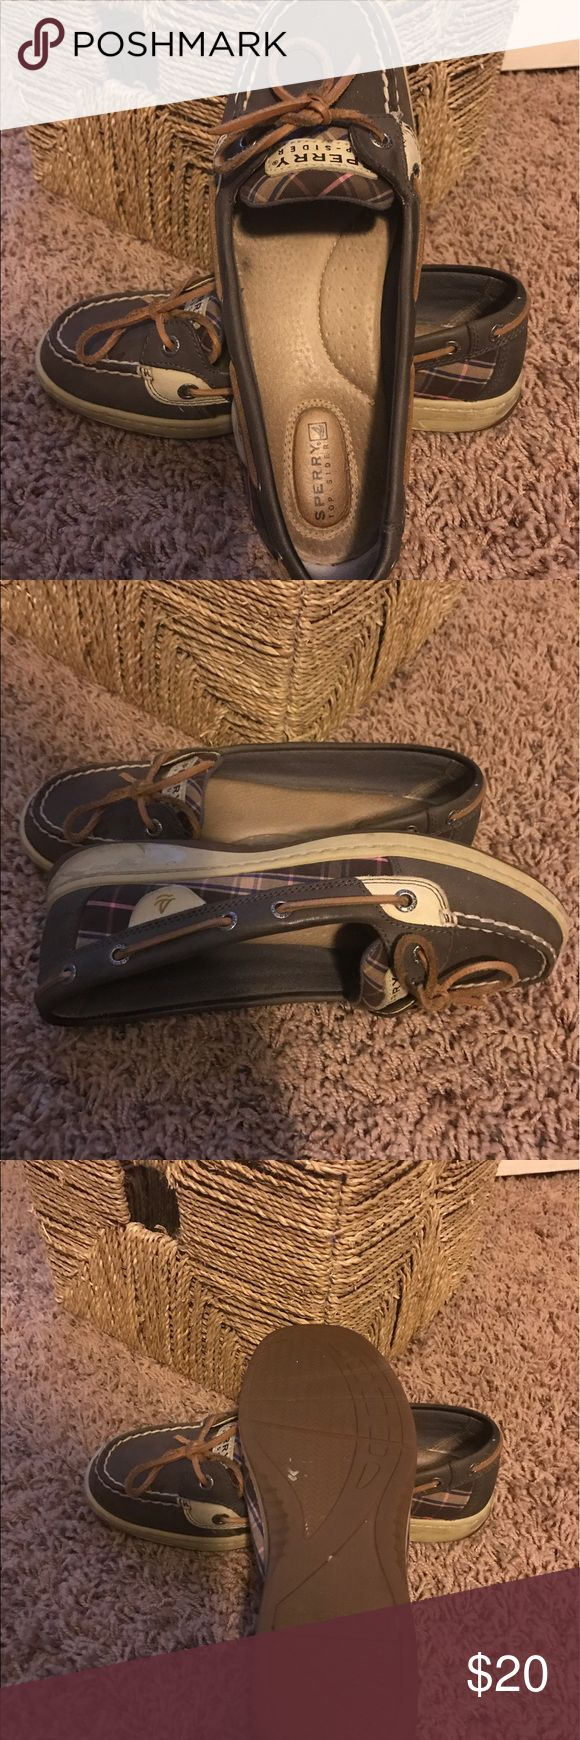 Sperry Top sider shoes These are brown, tan and pink Sperry Top Siders. They are size 7.5M. They just hurt my feet. Sperry Top-Sider Shoes Flats & Loafers